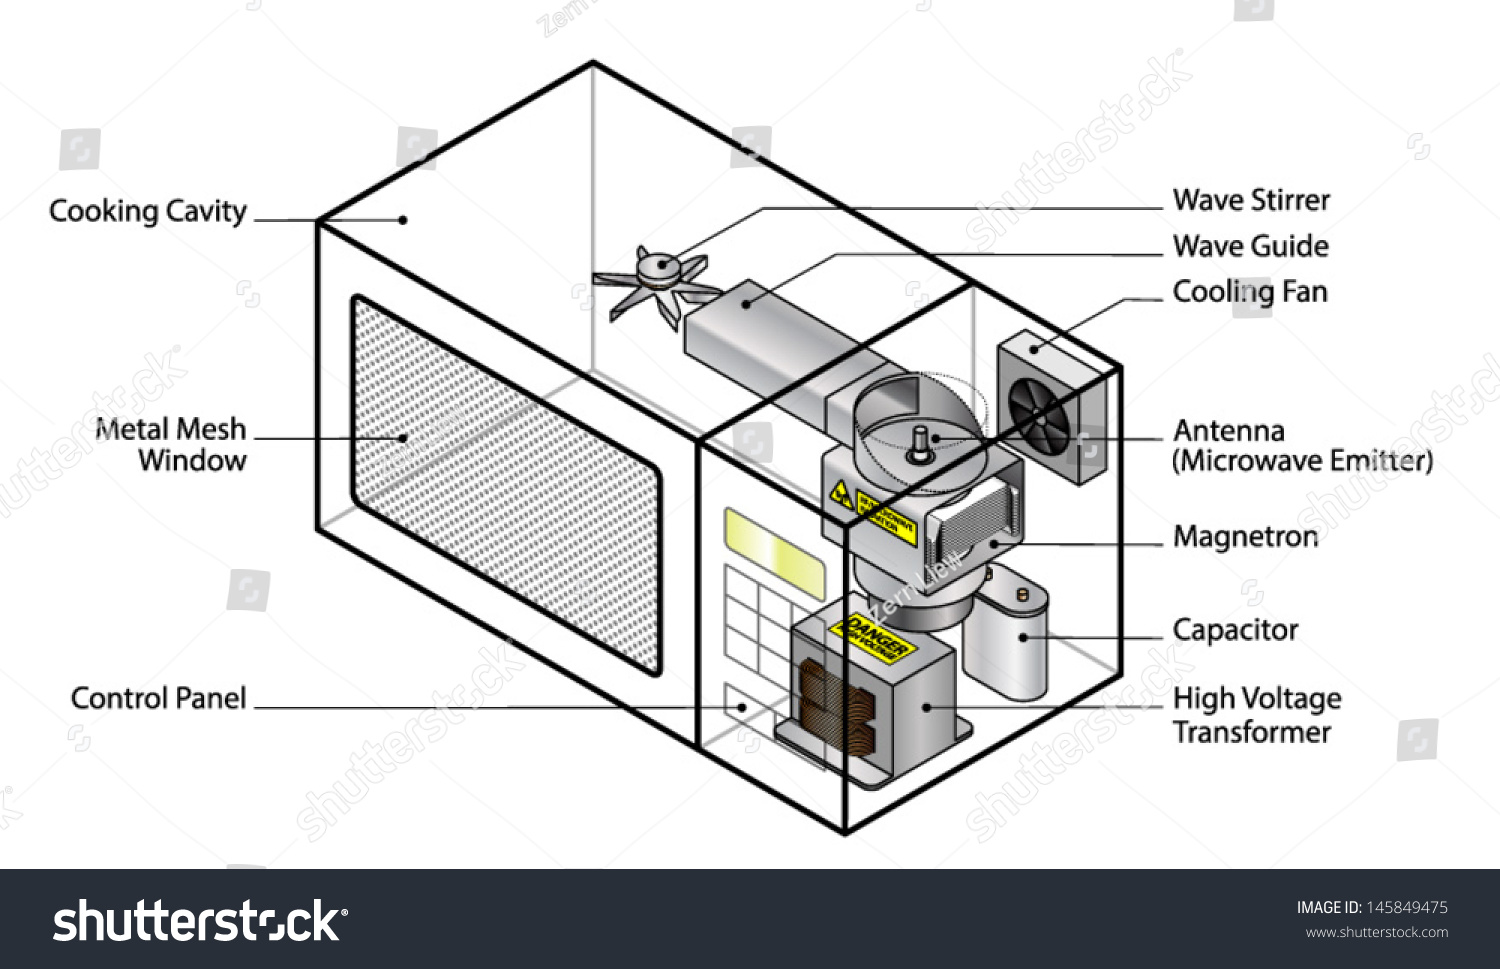 Microwave Oven Diagram ~ How does diagram microwave oven showing stock vector